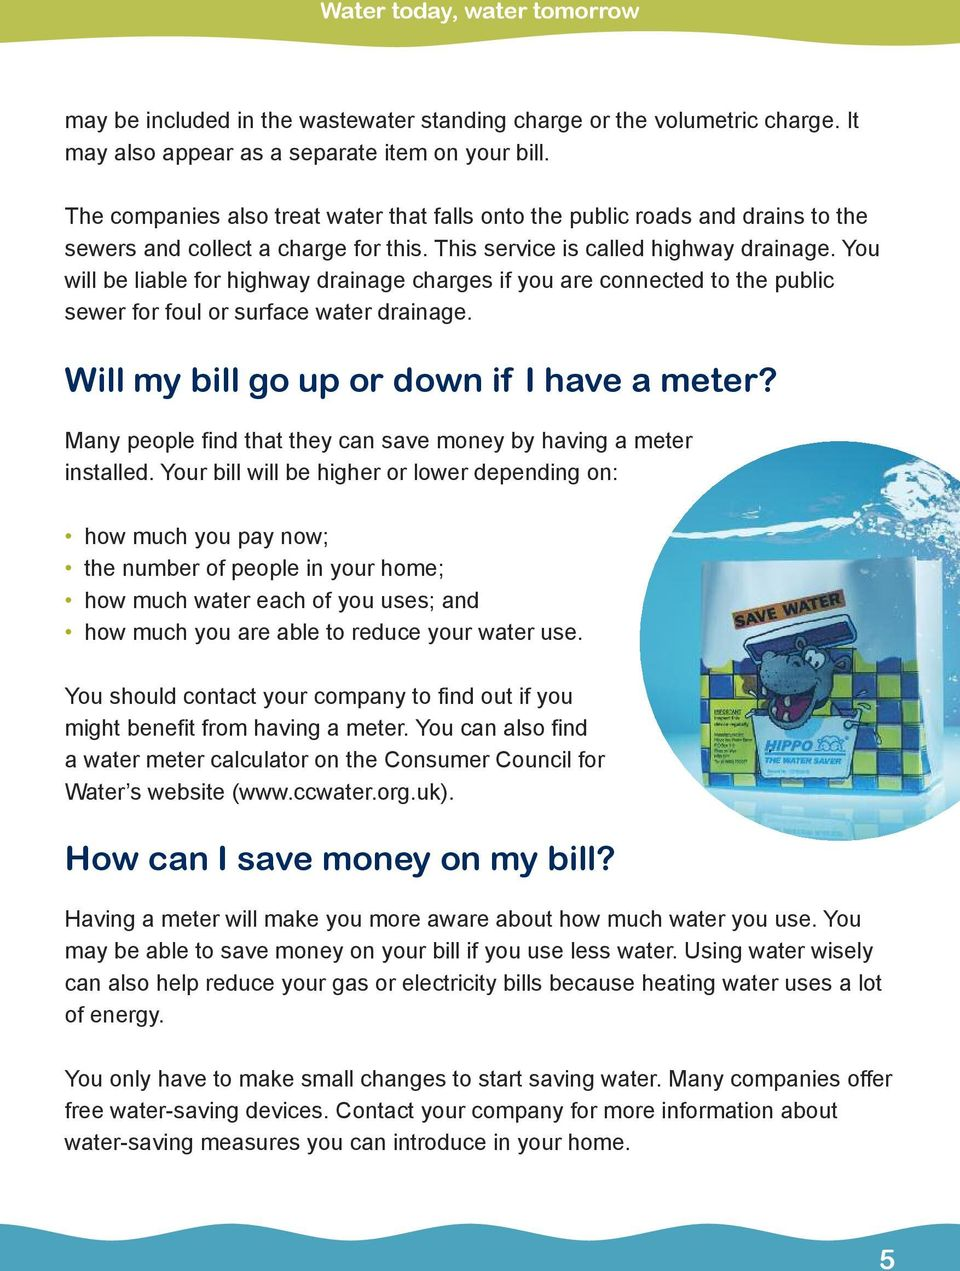 You will be liable for highway drainage charges if you are connected to the public sewer for foul or surface water drainage. Will my bill go up or down if I have a meter?